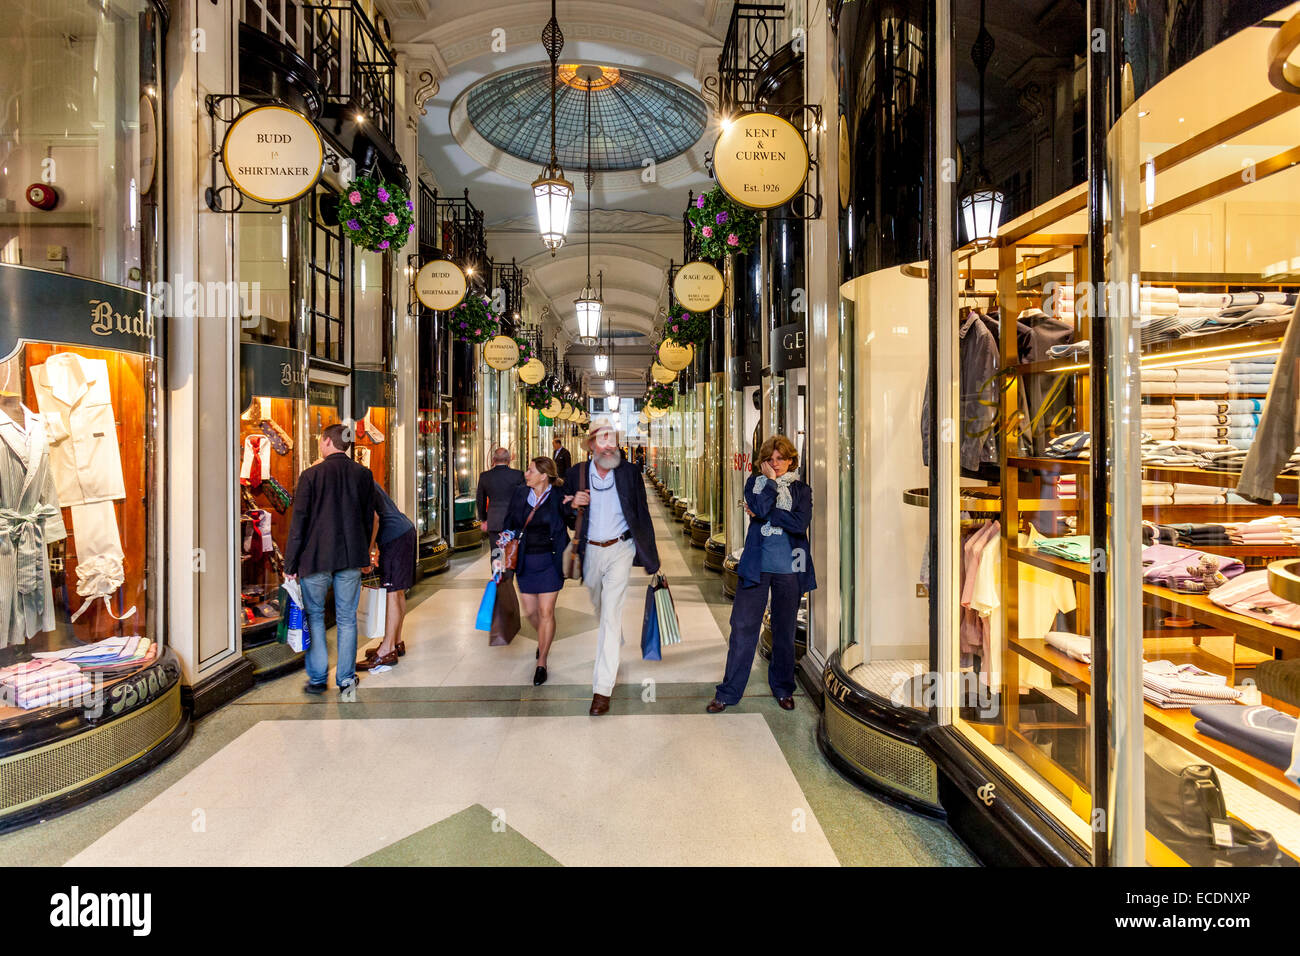 Piccadilly Arcade, Piccadilly, London, England - Stock Image